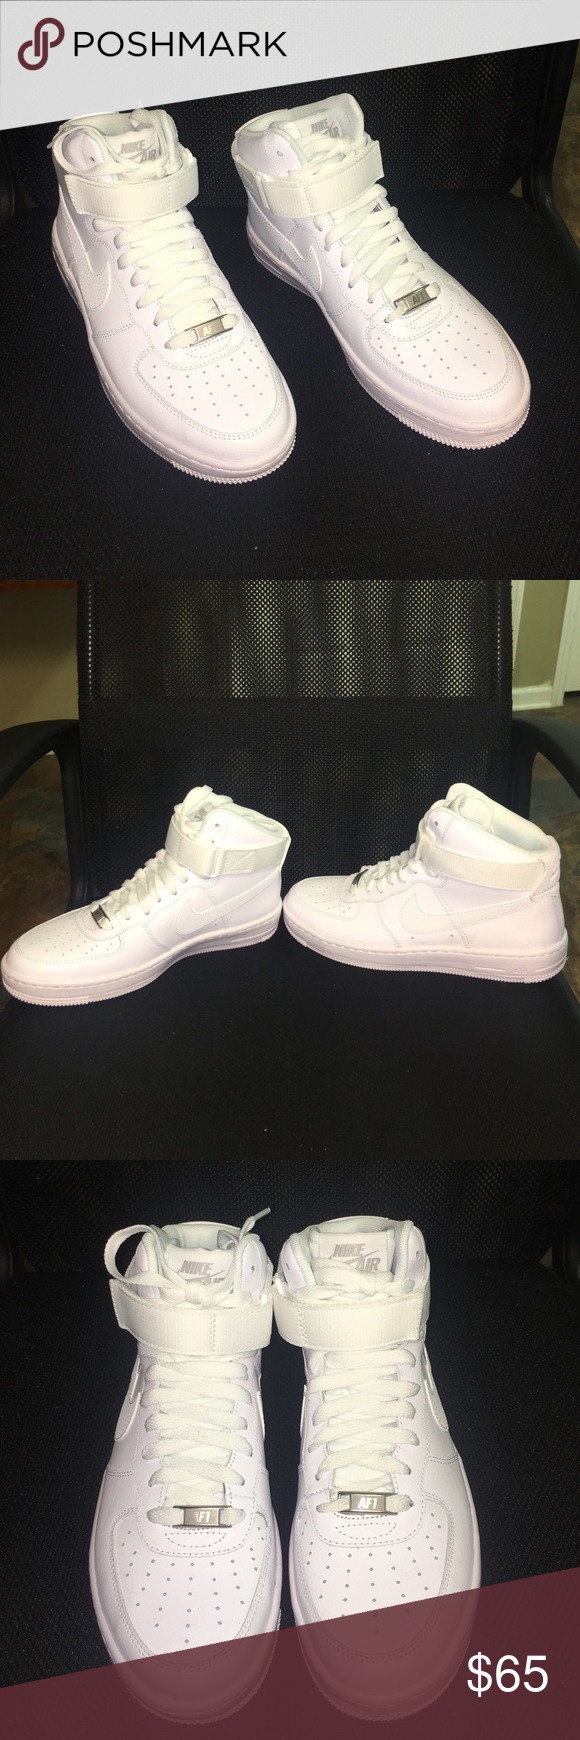 Nike Air Force 1 shoes!!! Brand new never worn Nike Air Force 1 tennis shoes! Nike Shoes